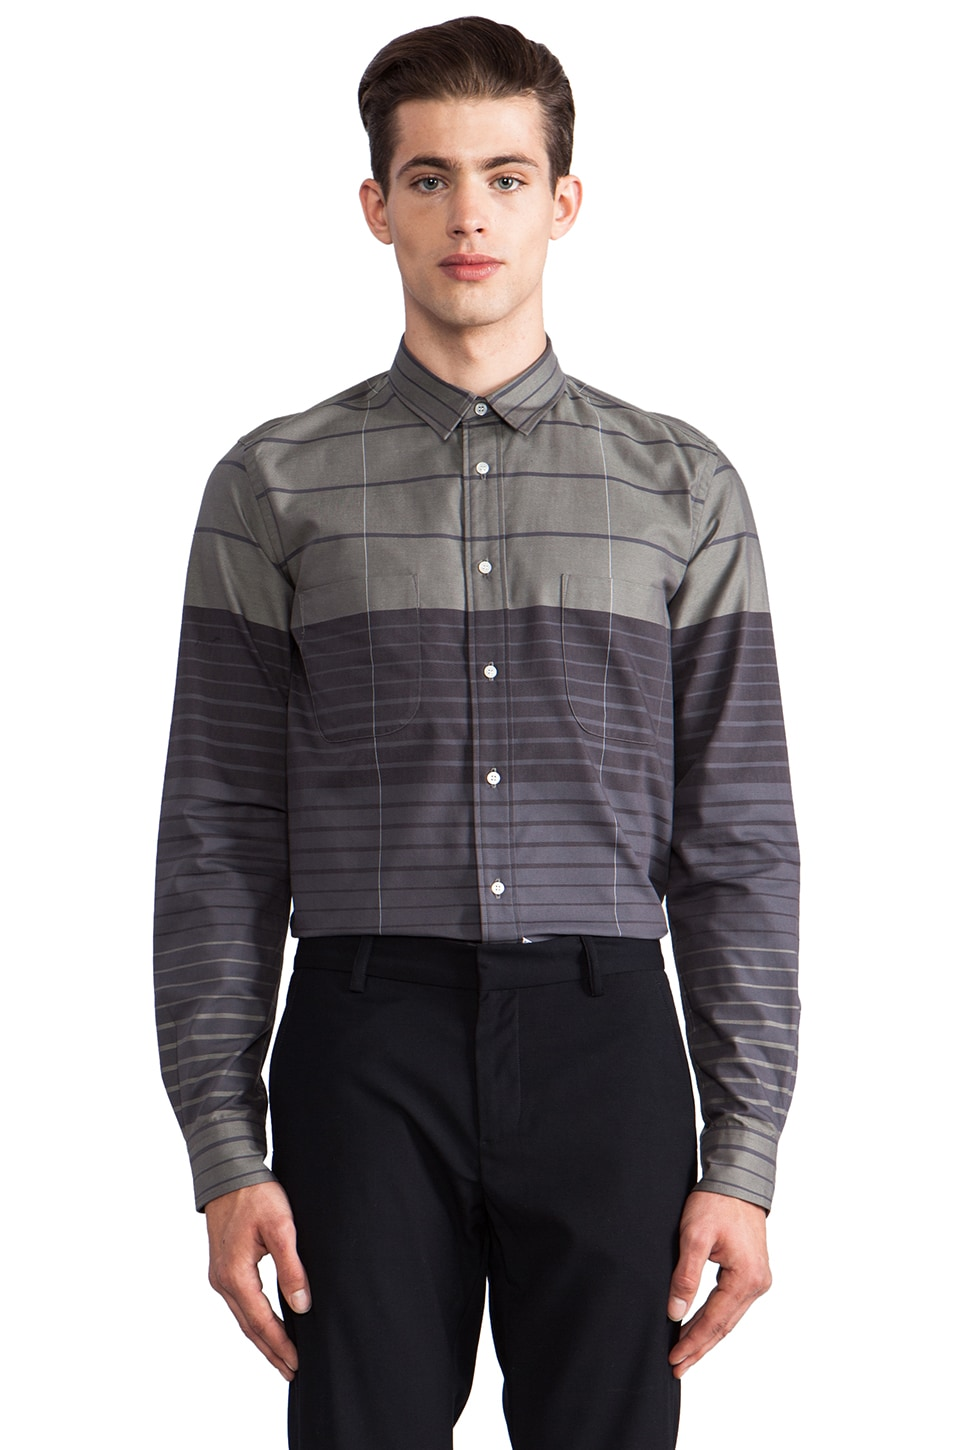 Sidian, Ersatz & Vanes Striped Button Down in Grey Gradient